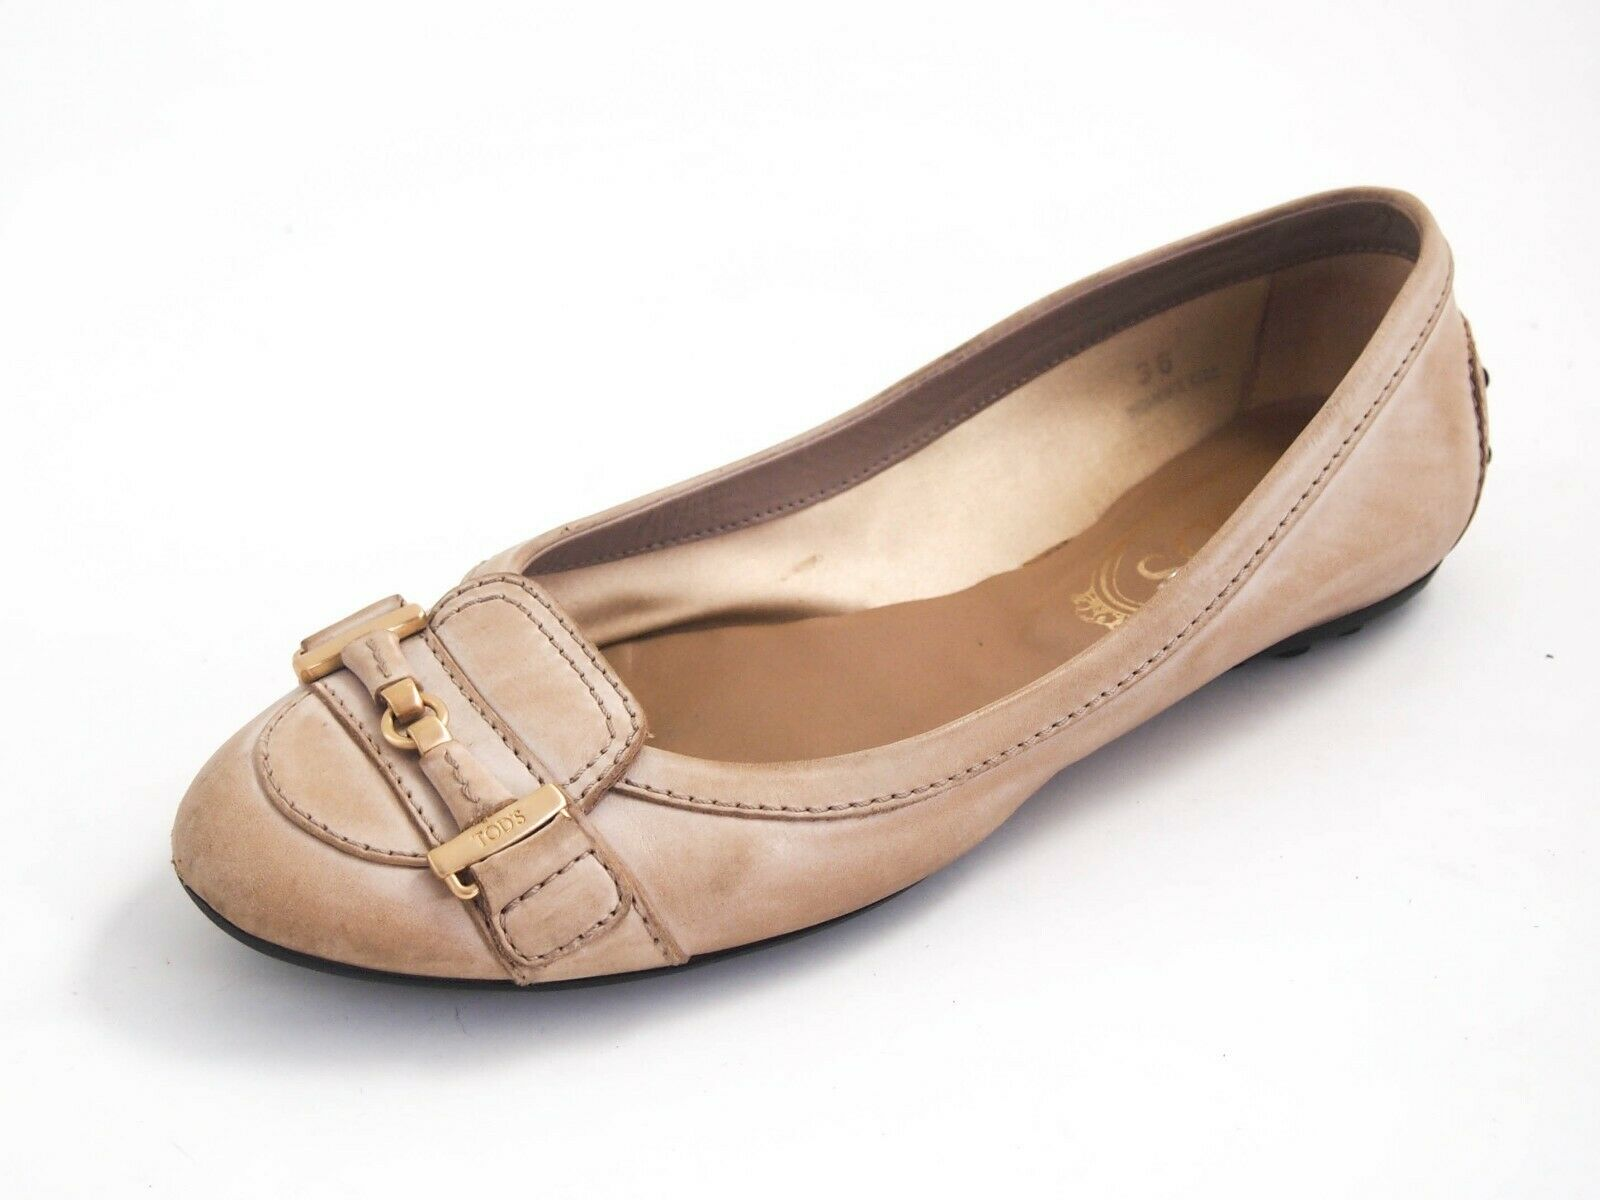 Tod's Ballet Flats Beige Leather mujer zapatos Talla EU 36 US 6  420